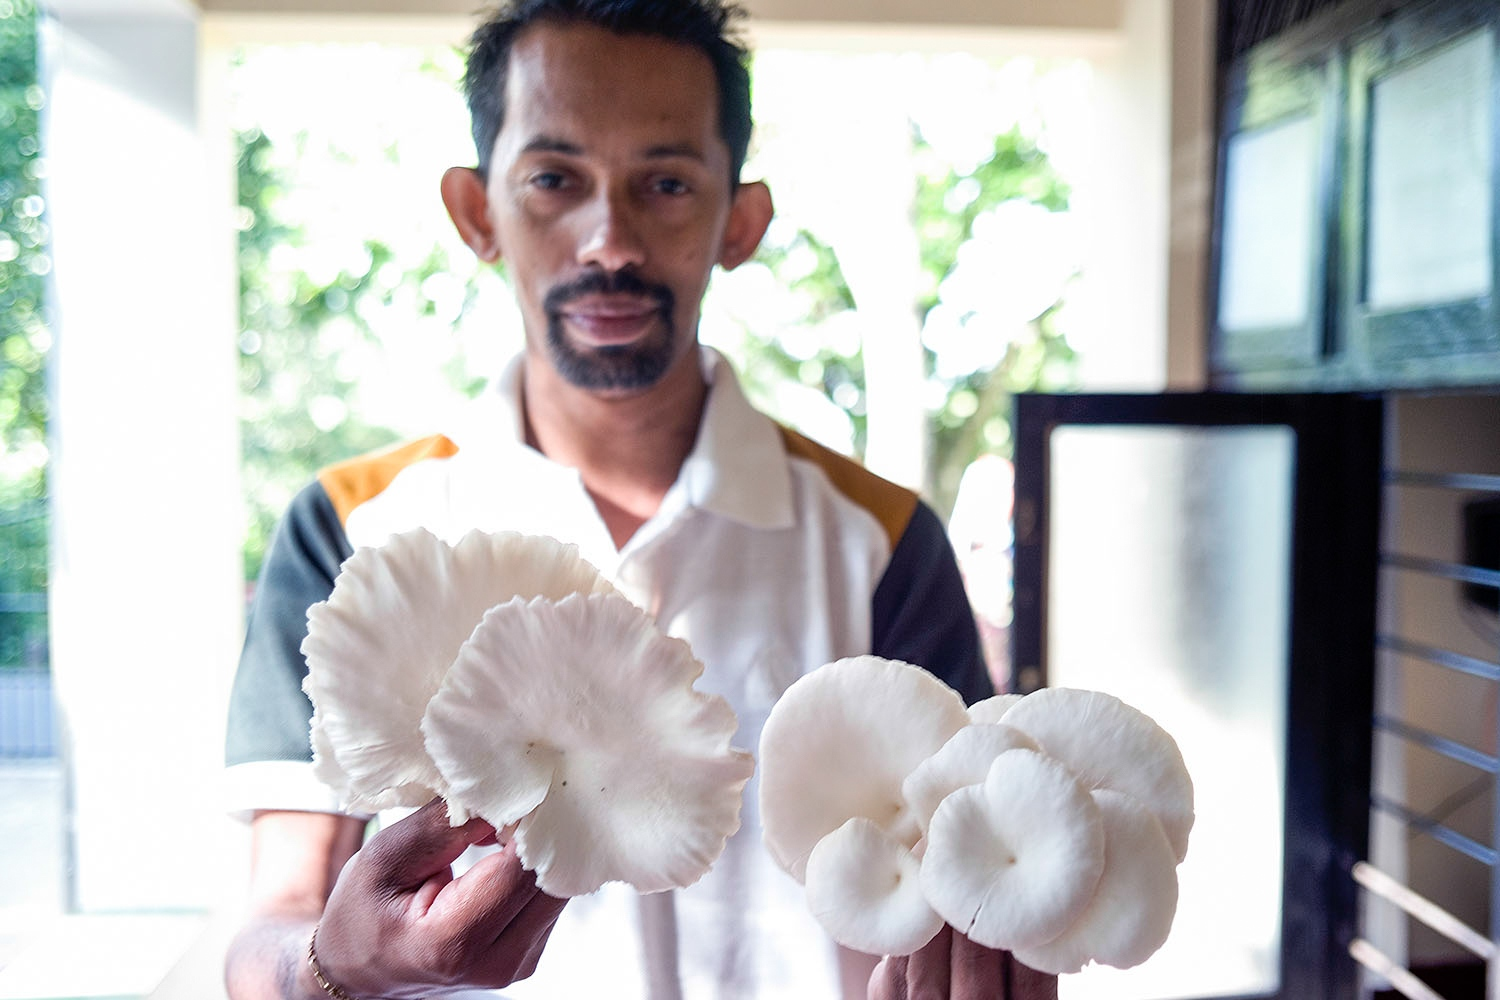 Priyantha Gunasinghe, the general manager of a community centre holds mushrooms that are grown in the garden shed, named The Mushroom Project. The charity run centre provides support to isolated communities by giving them the training to grow their own food.